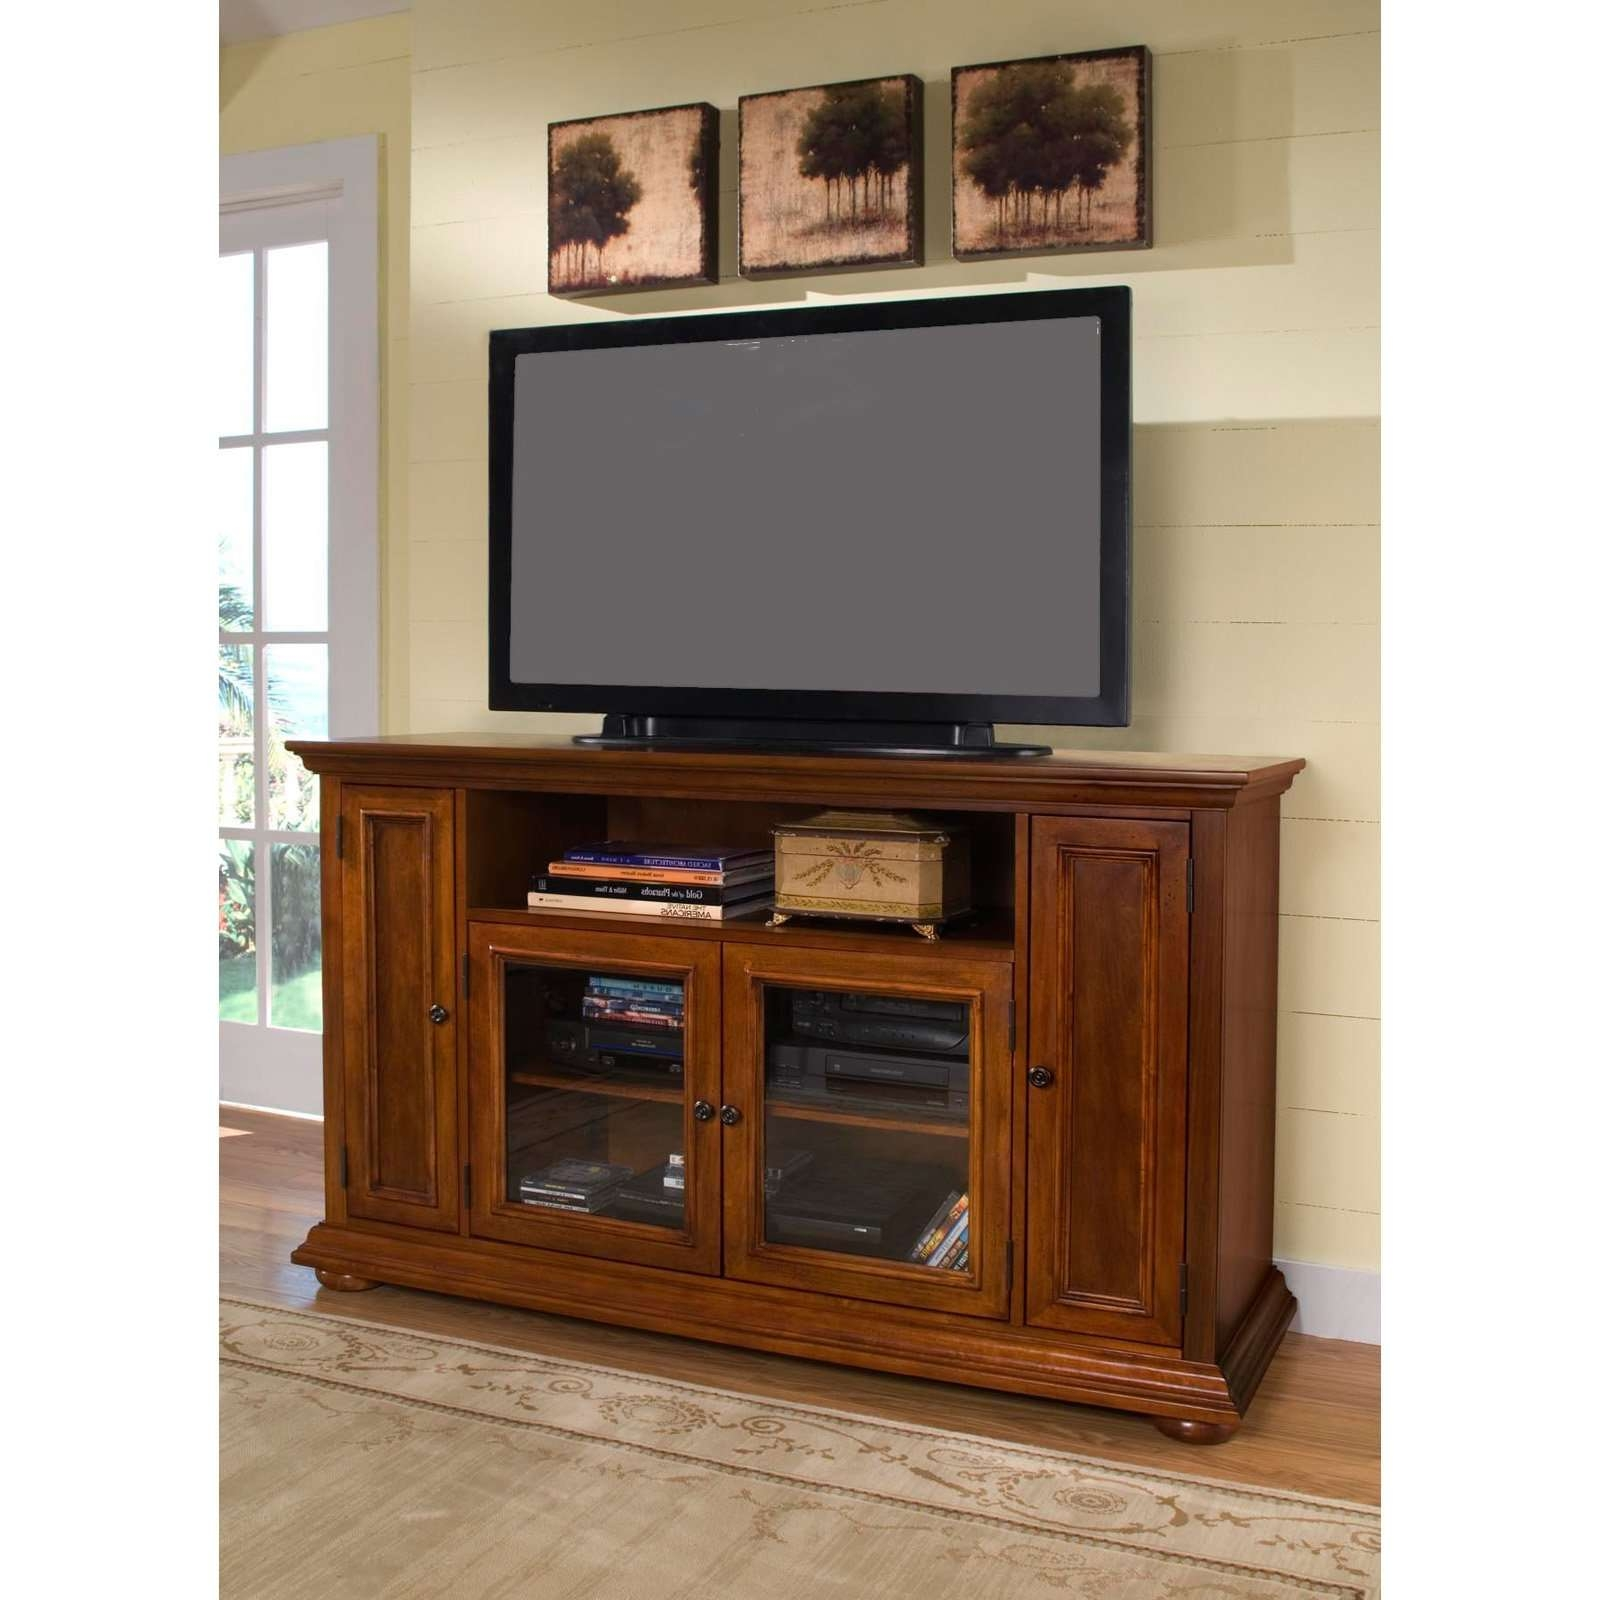 Rectangle Black Flat Screen Tv Over Brown Wooden Cabinet With For Wooden Tv Stands With Glass Doors (View 12 of 15)